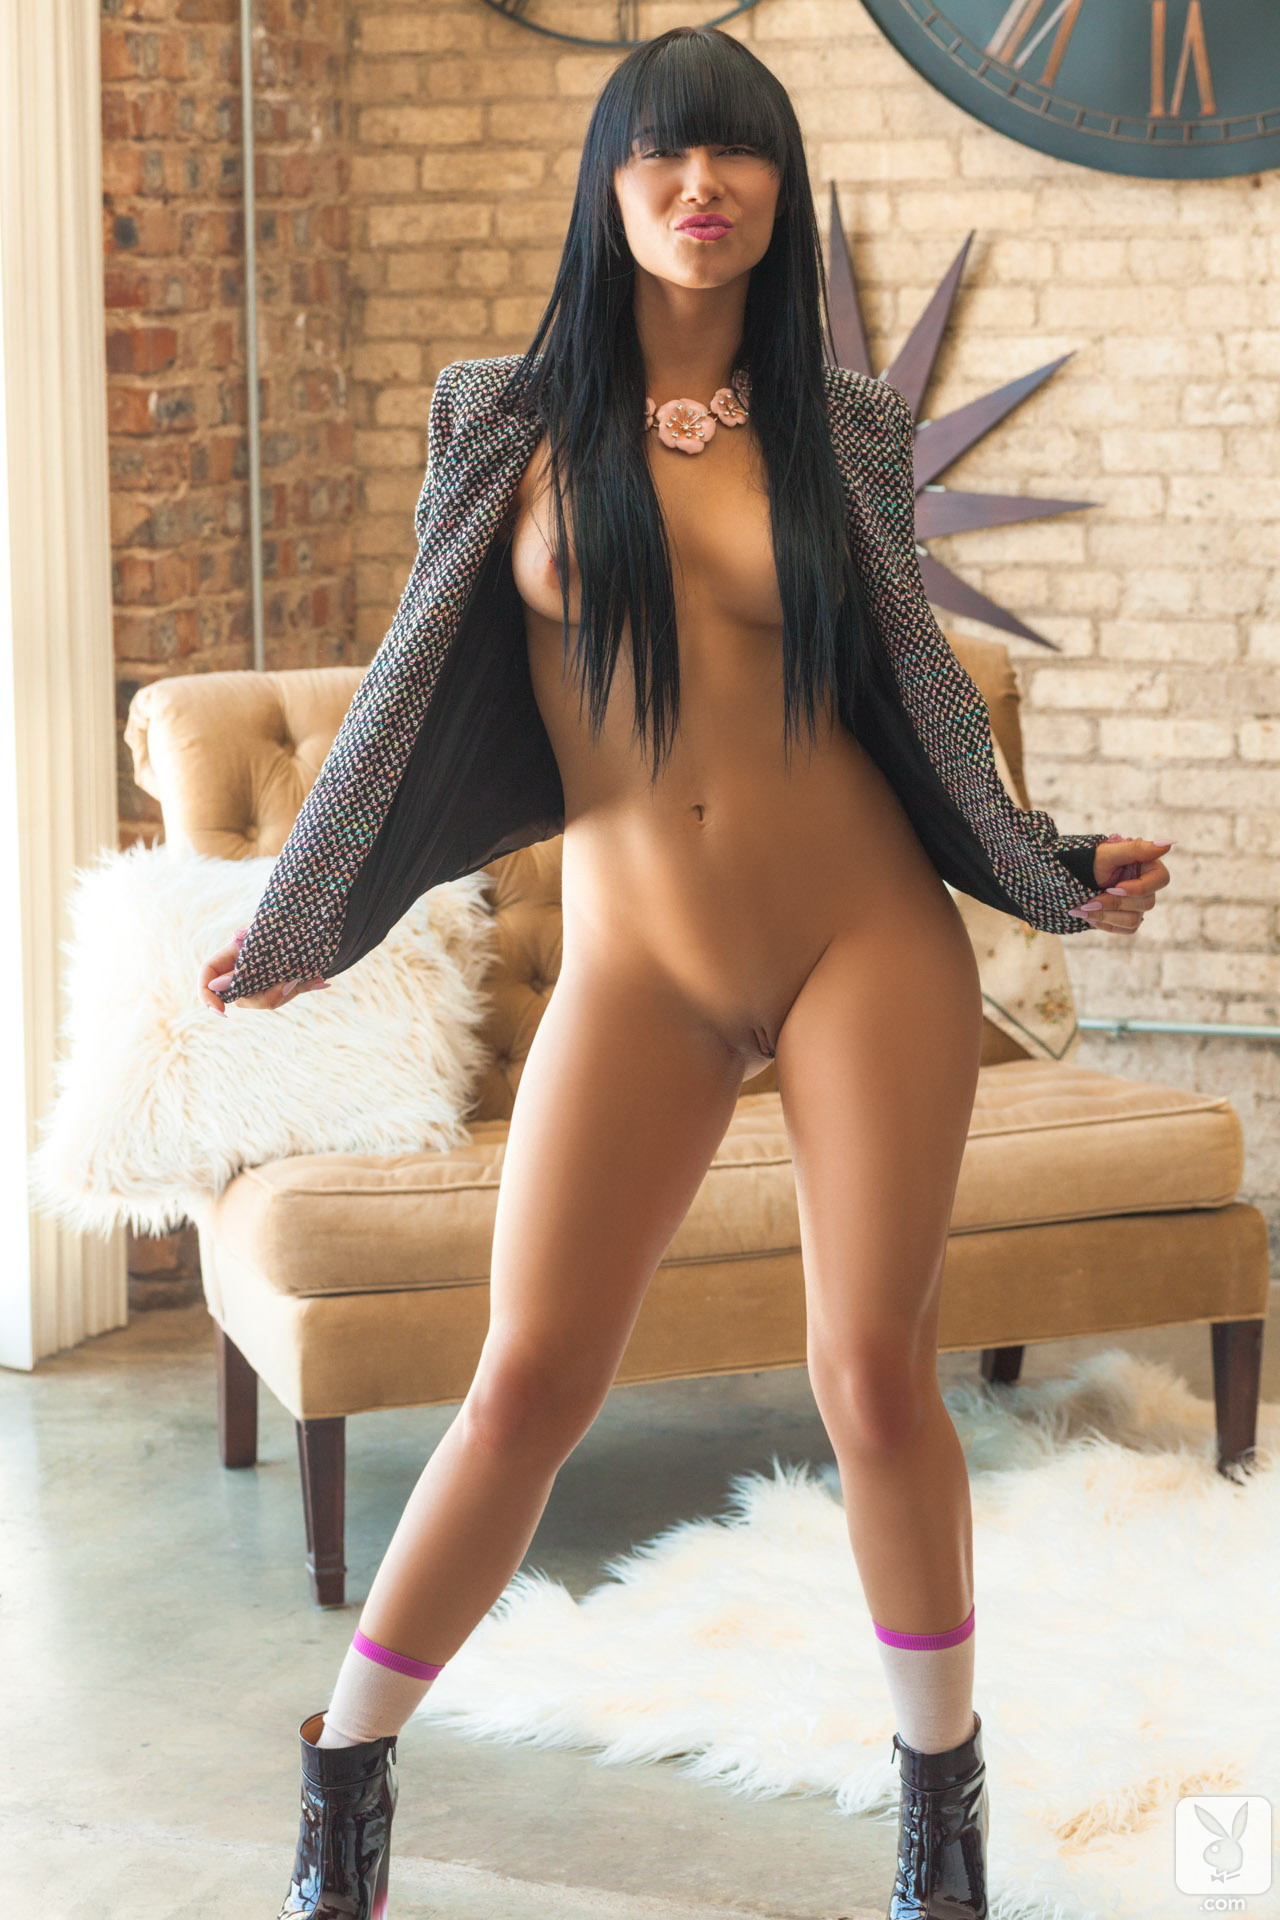 lana-james-brunette-nude-jacket-playboy-08